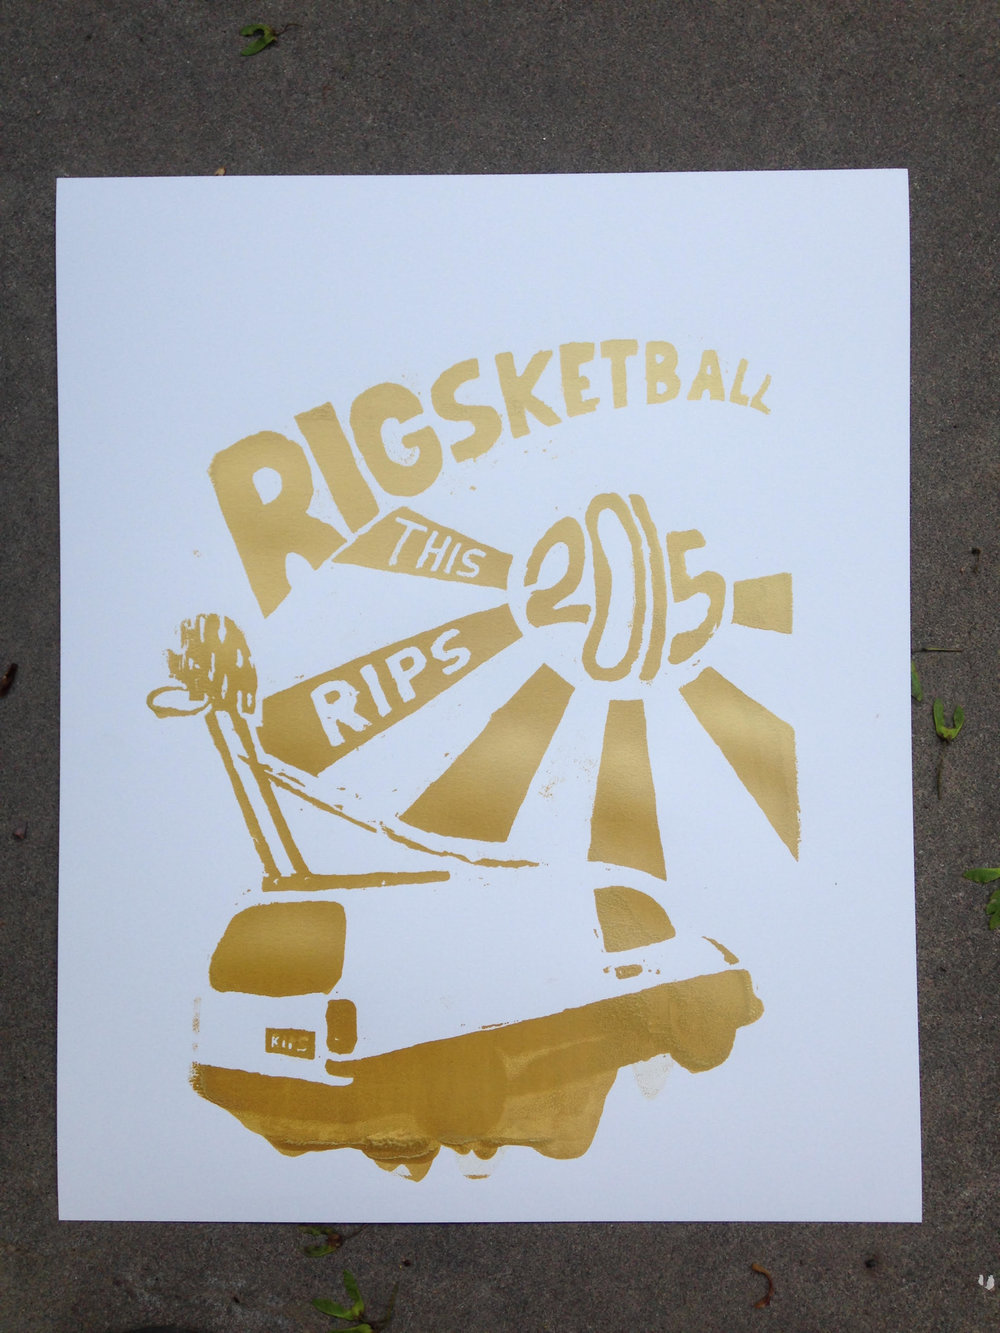 2015 Classic Style Poster Rigsketball.jpg